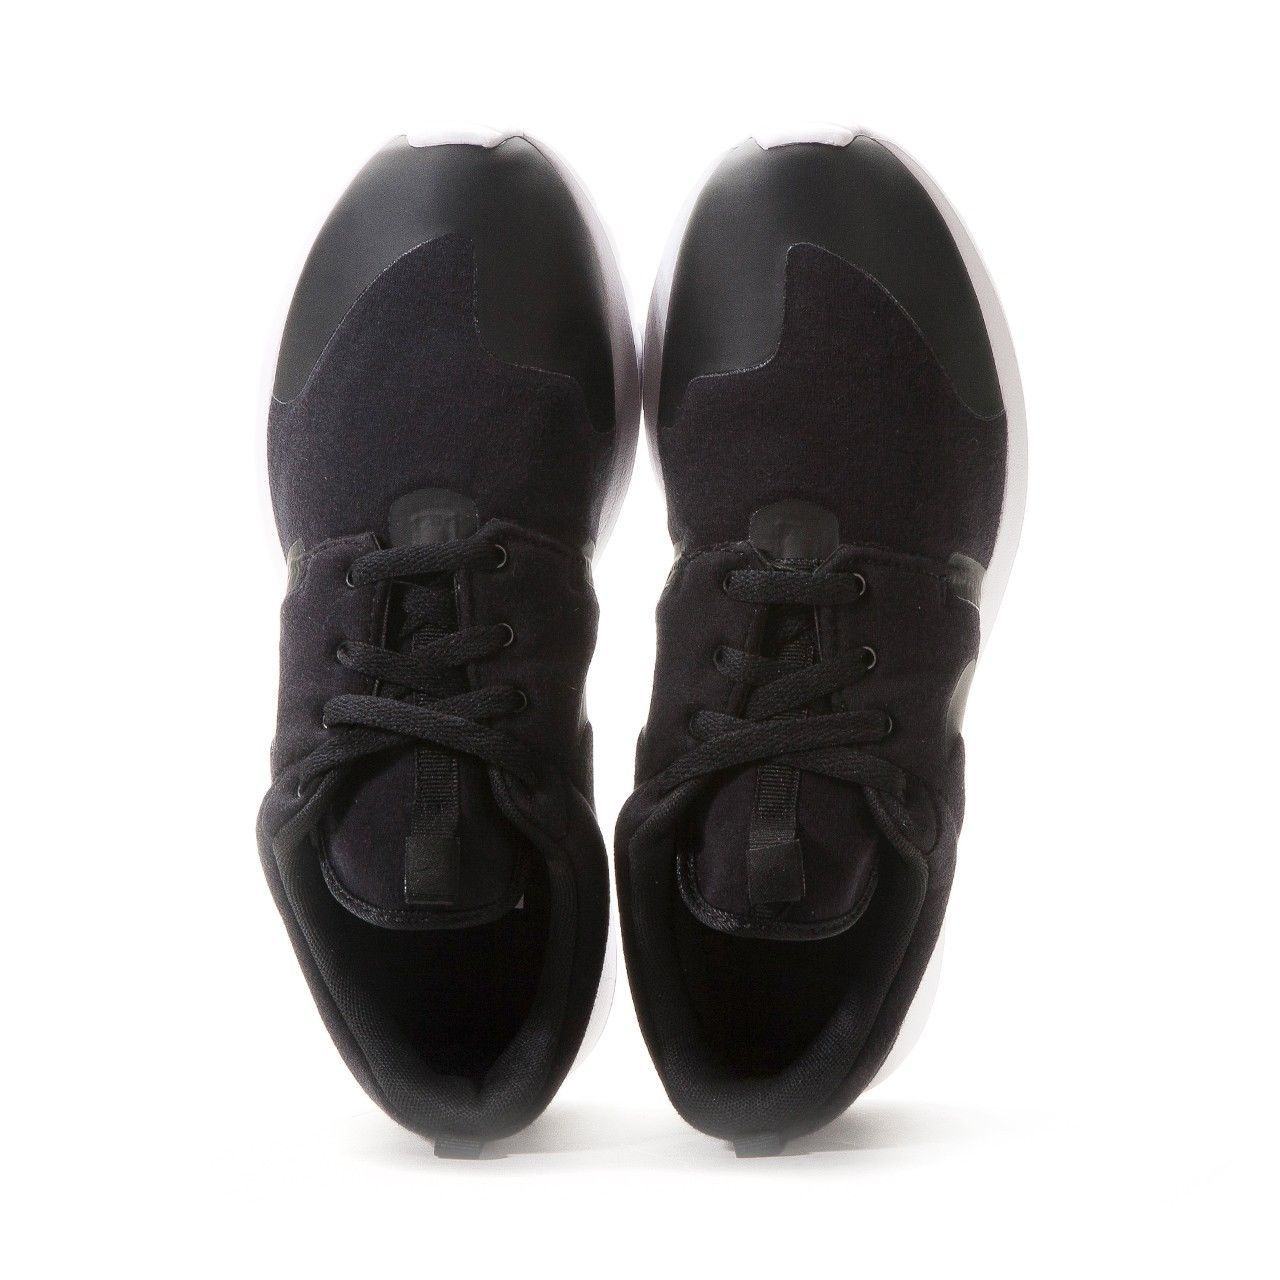 Nike Roshe NM TP Tech Fleece Pack Men's Trainers Shoes In Black 749658-001